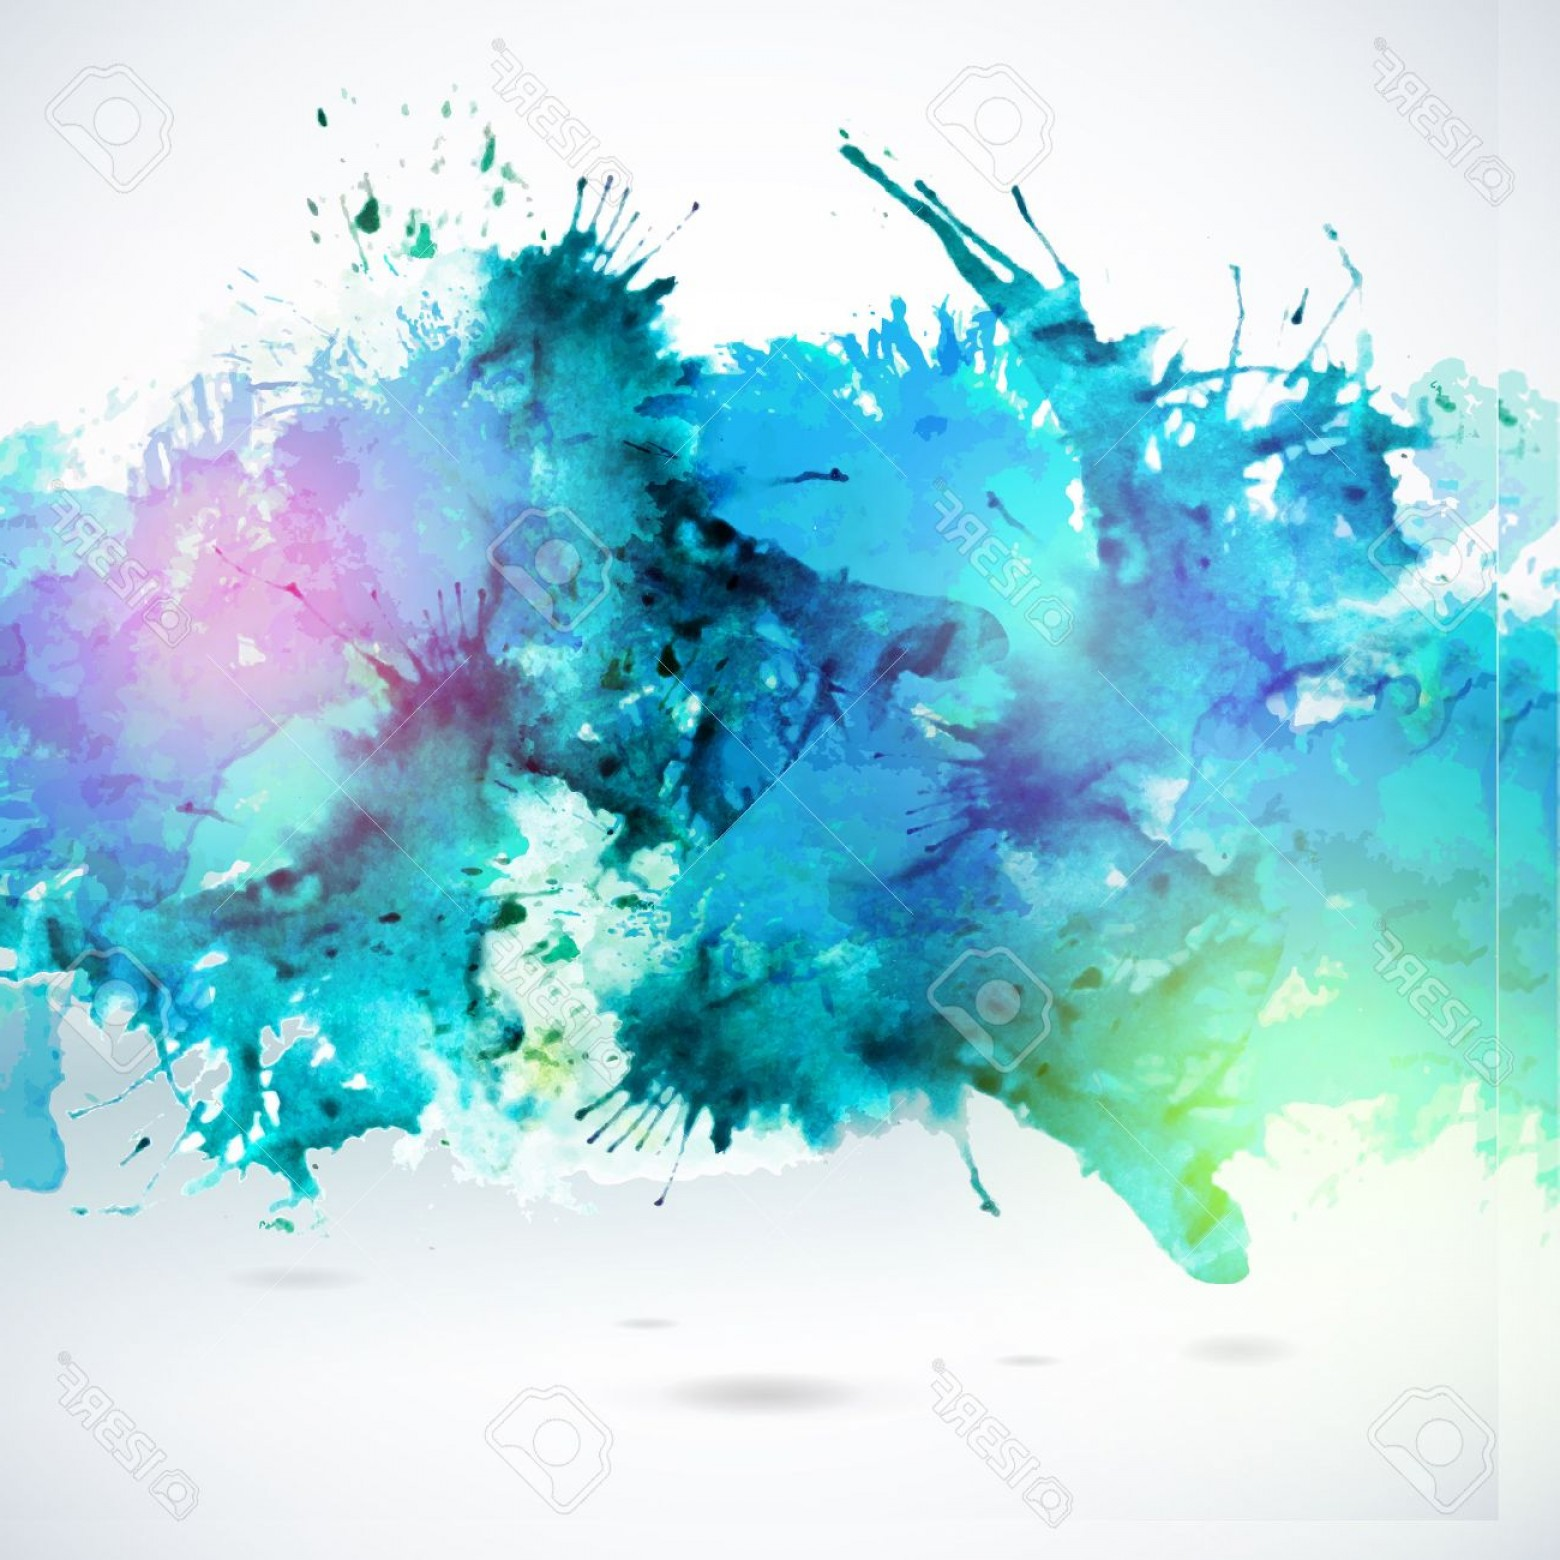 Watercolor Vector Background Free: Photostock Vector Sky Blue Centered Decorative Watercolor Background Vector Hand Drawing Abstract Illustration For Bus